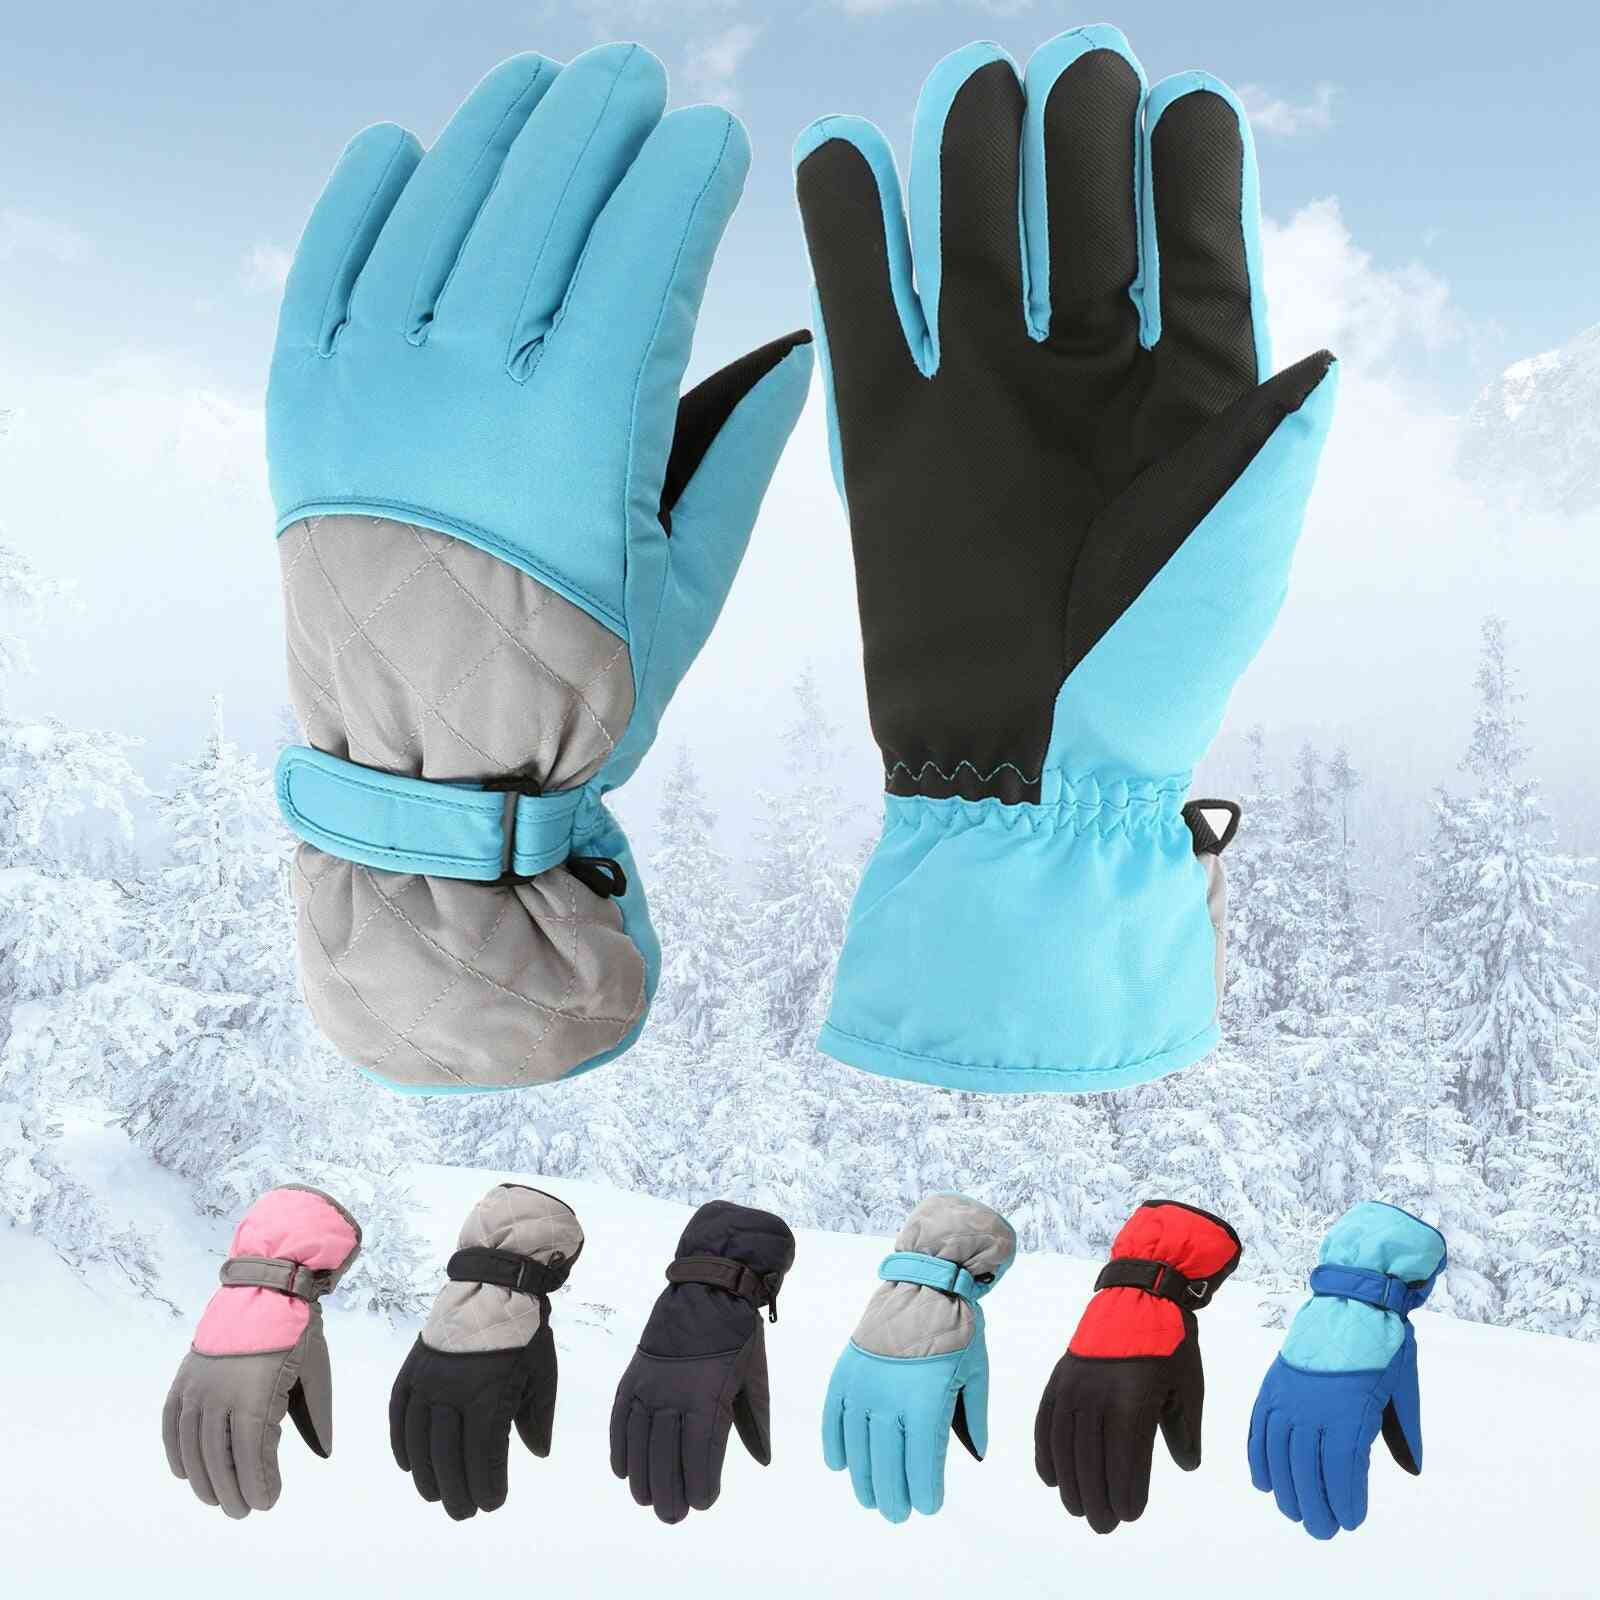 Kids Fashion Winter Warming Snow Windproof Mittens Simple Outdoor Sports Skiing Mittens Gloves  For Age 6-11 Years